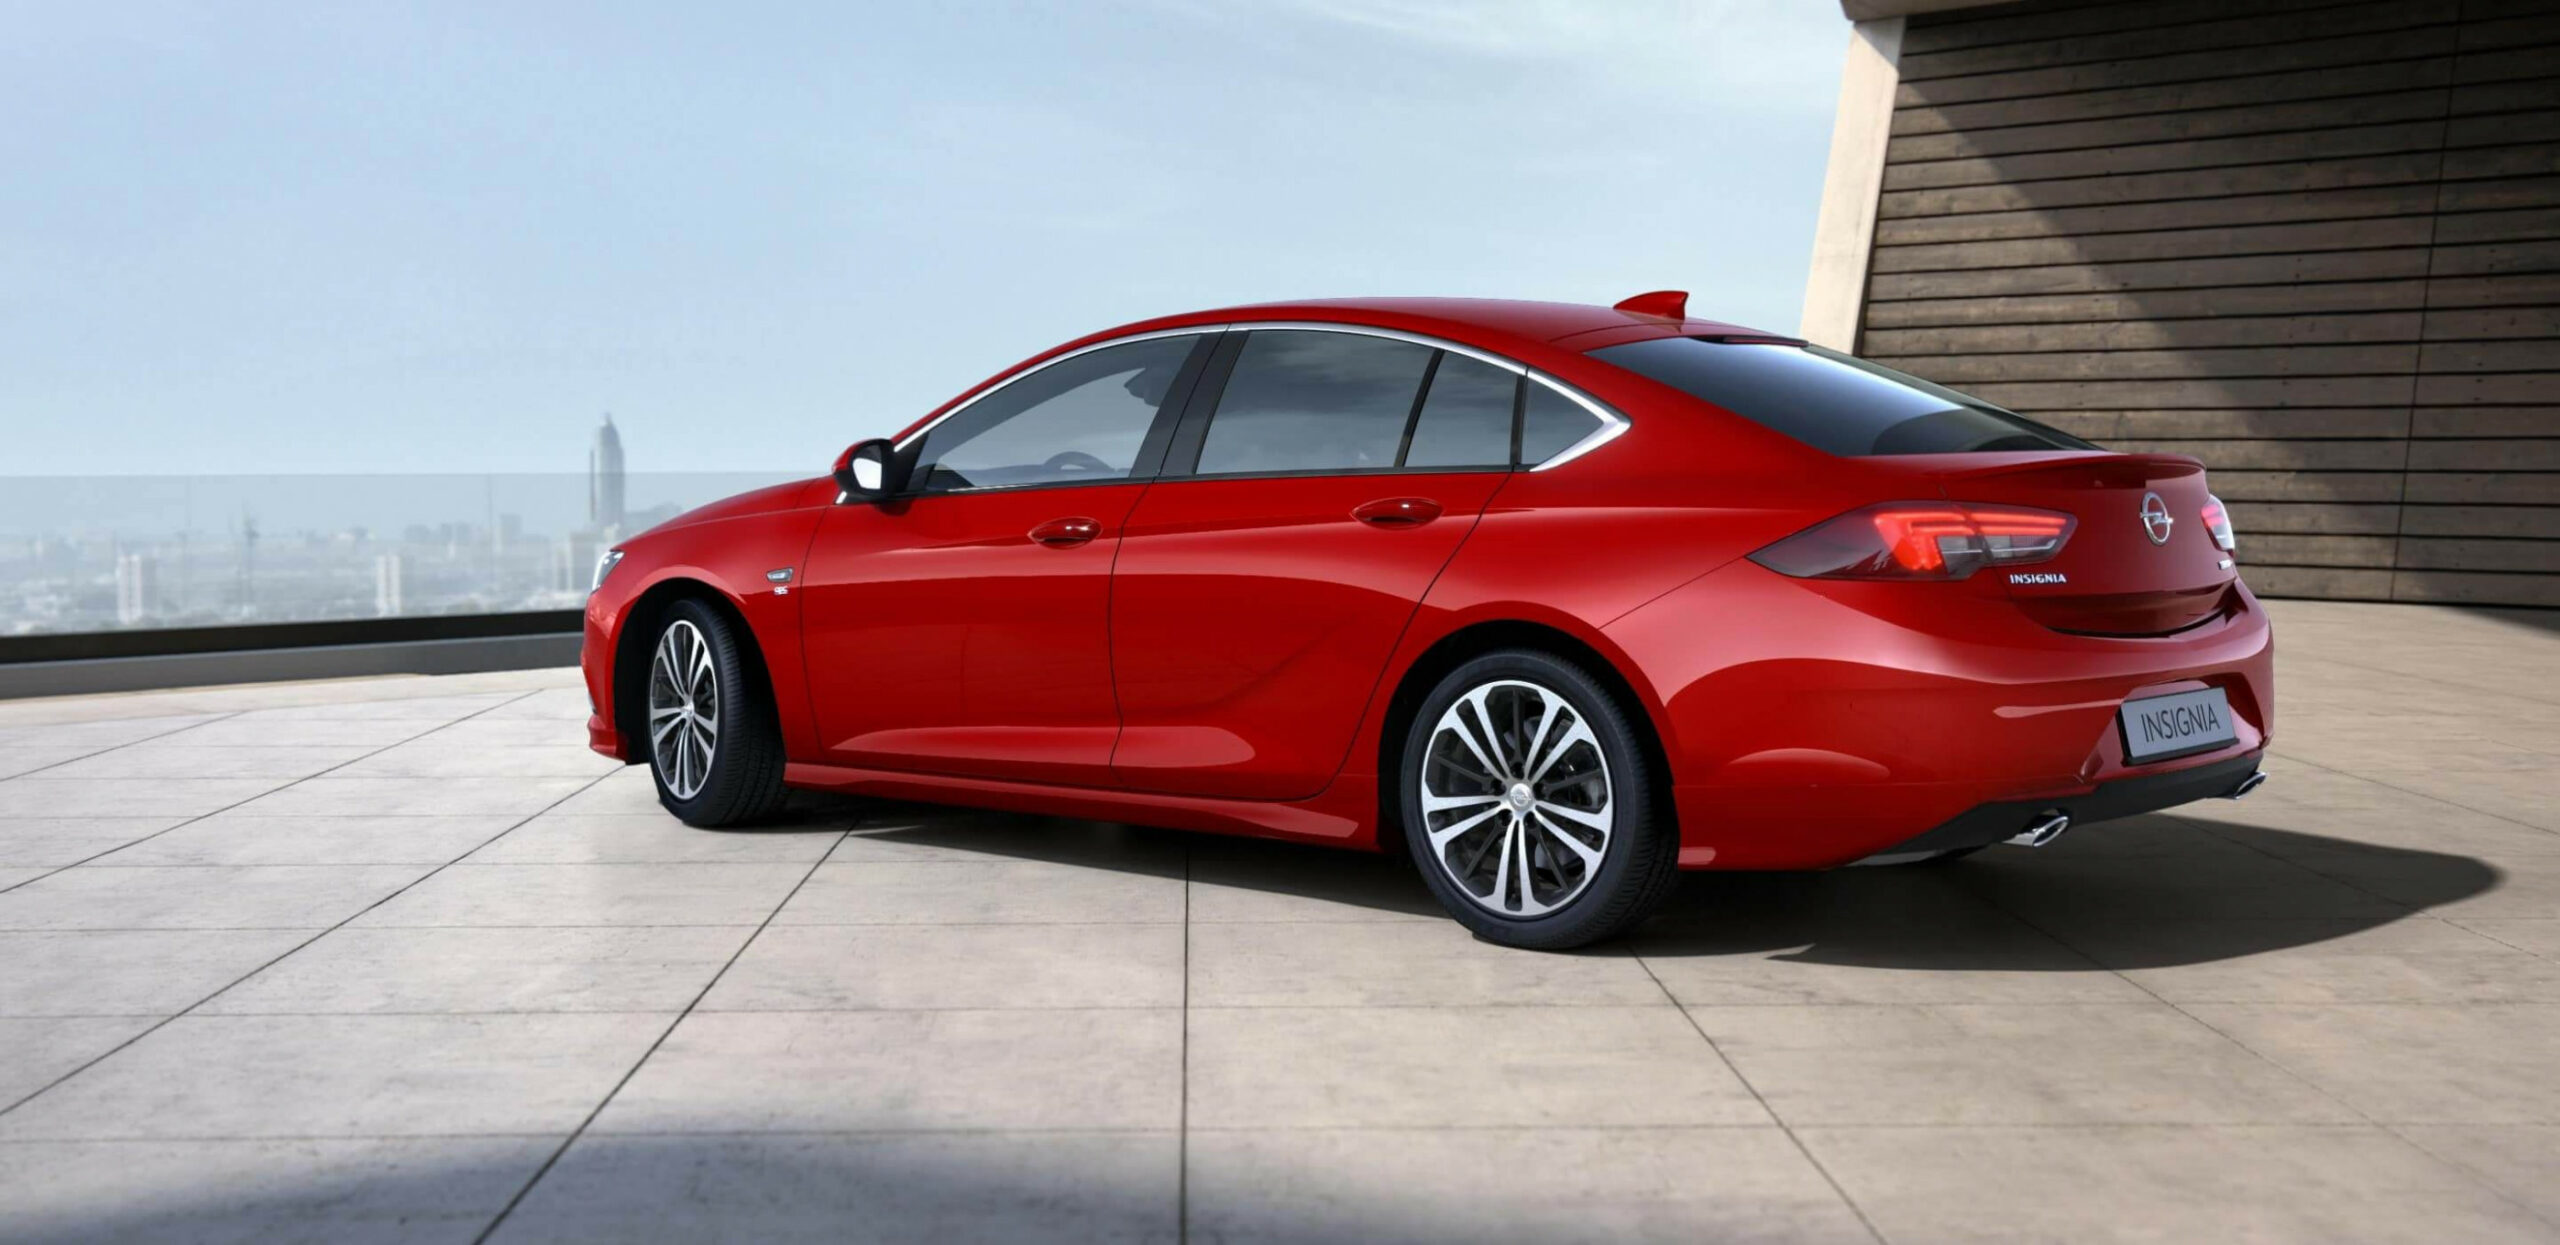 opel insignia 9 qiymeti Review, specs and Release date 9*9 ..